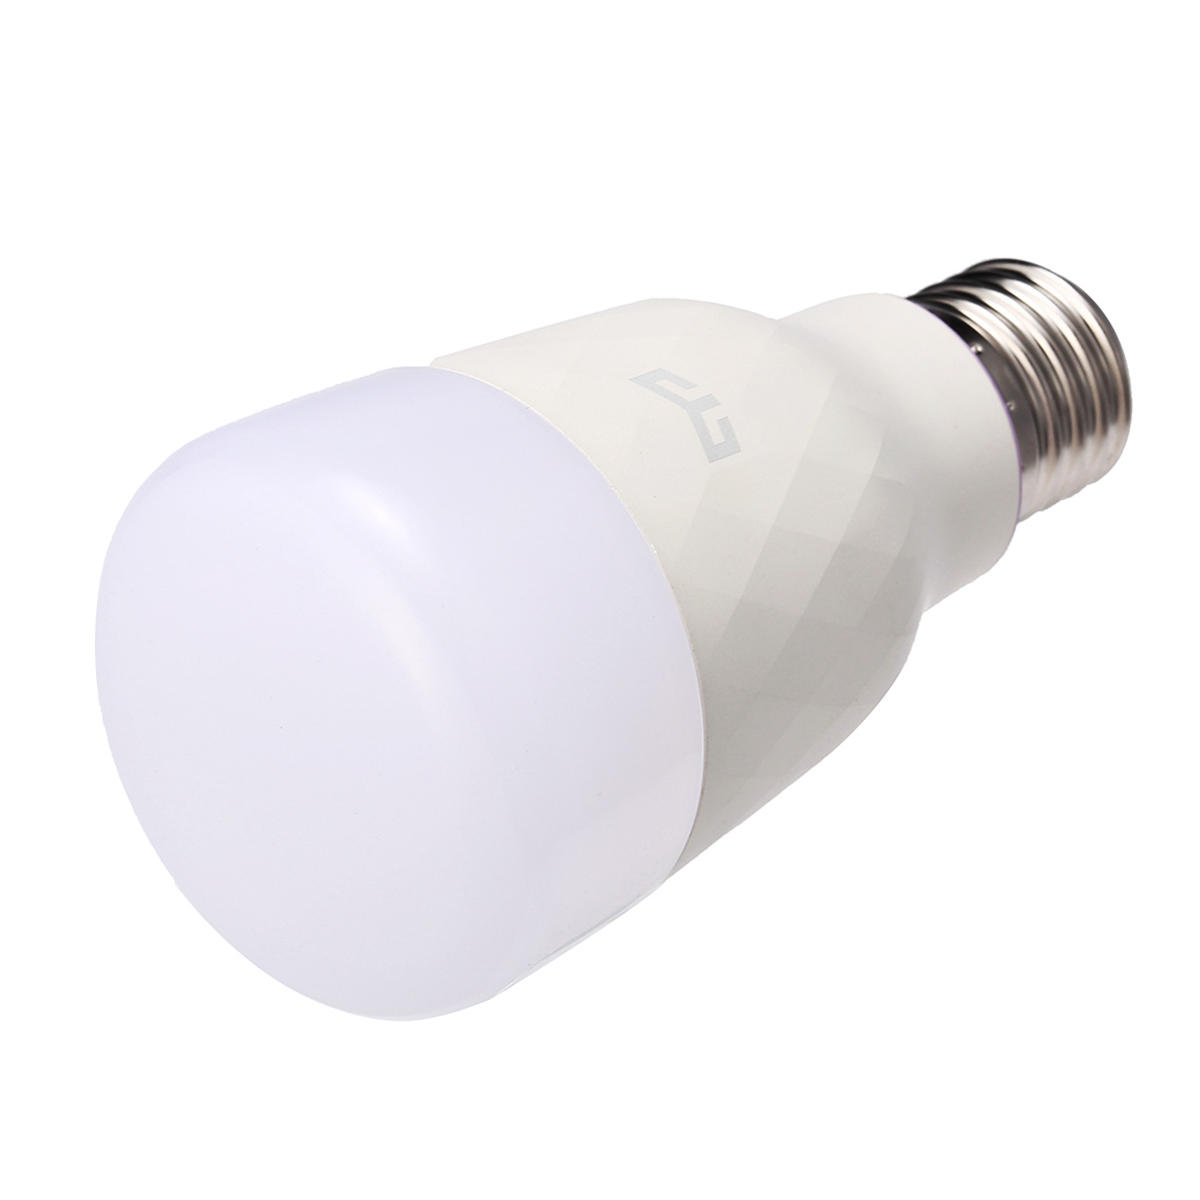 E27 960P Wireless bluetooth WIFI 360° Panoramic Hidden IP Camera Music LED Bulb AC110-220V - 5